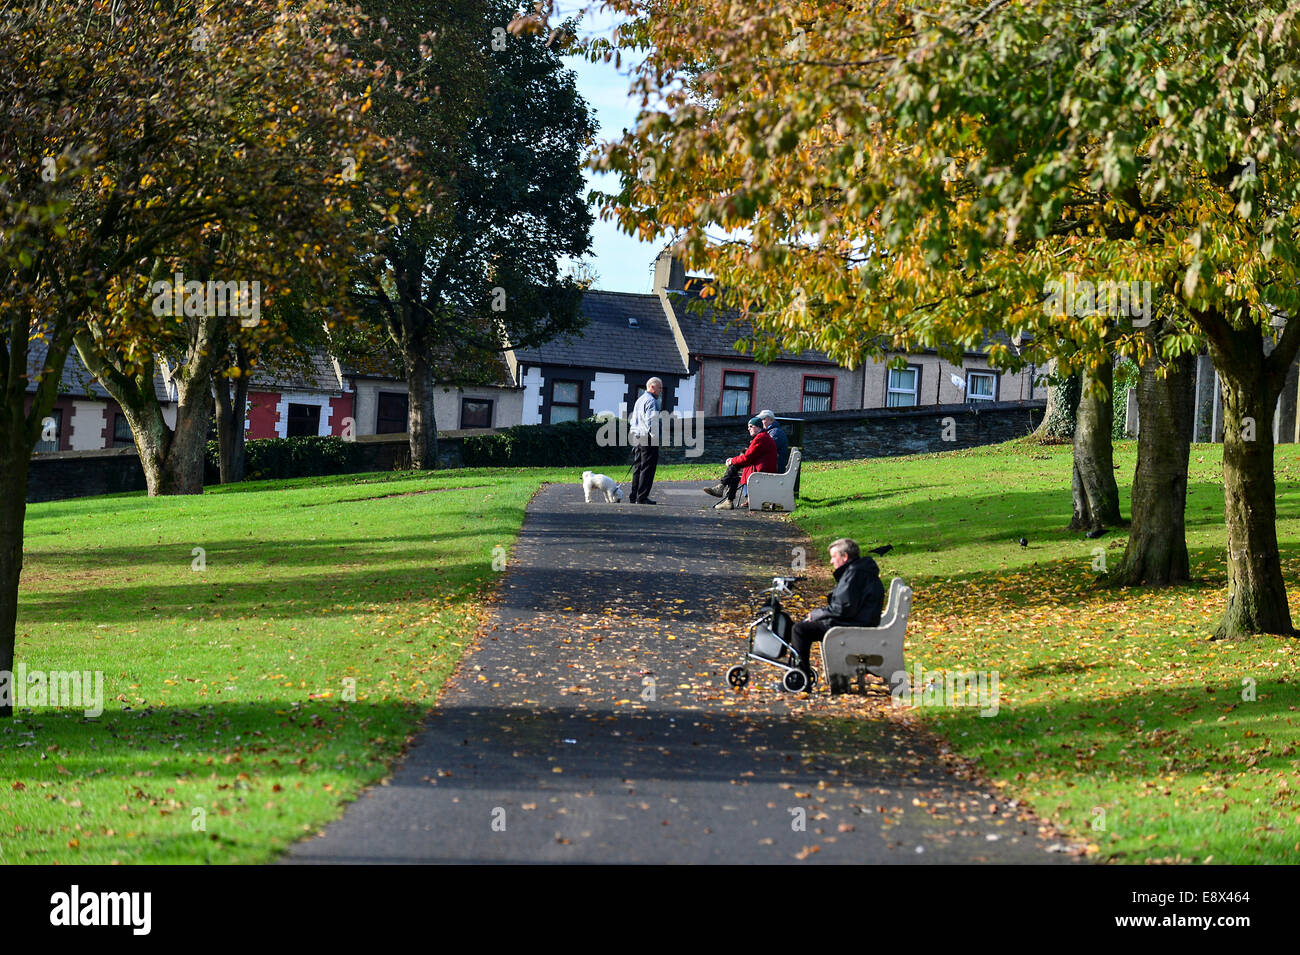 Stock Photo - Older men sitting in the sunshine in park, Derry, Londonderry, Northern Ireland. ©George Sweeney - Stock Image